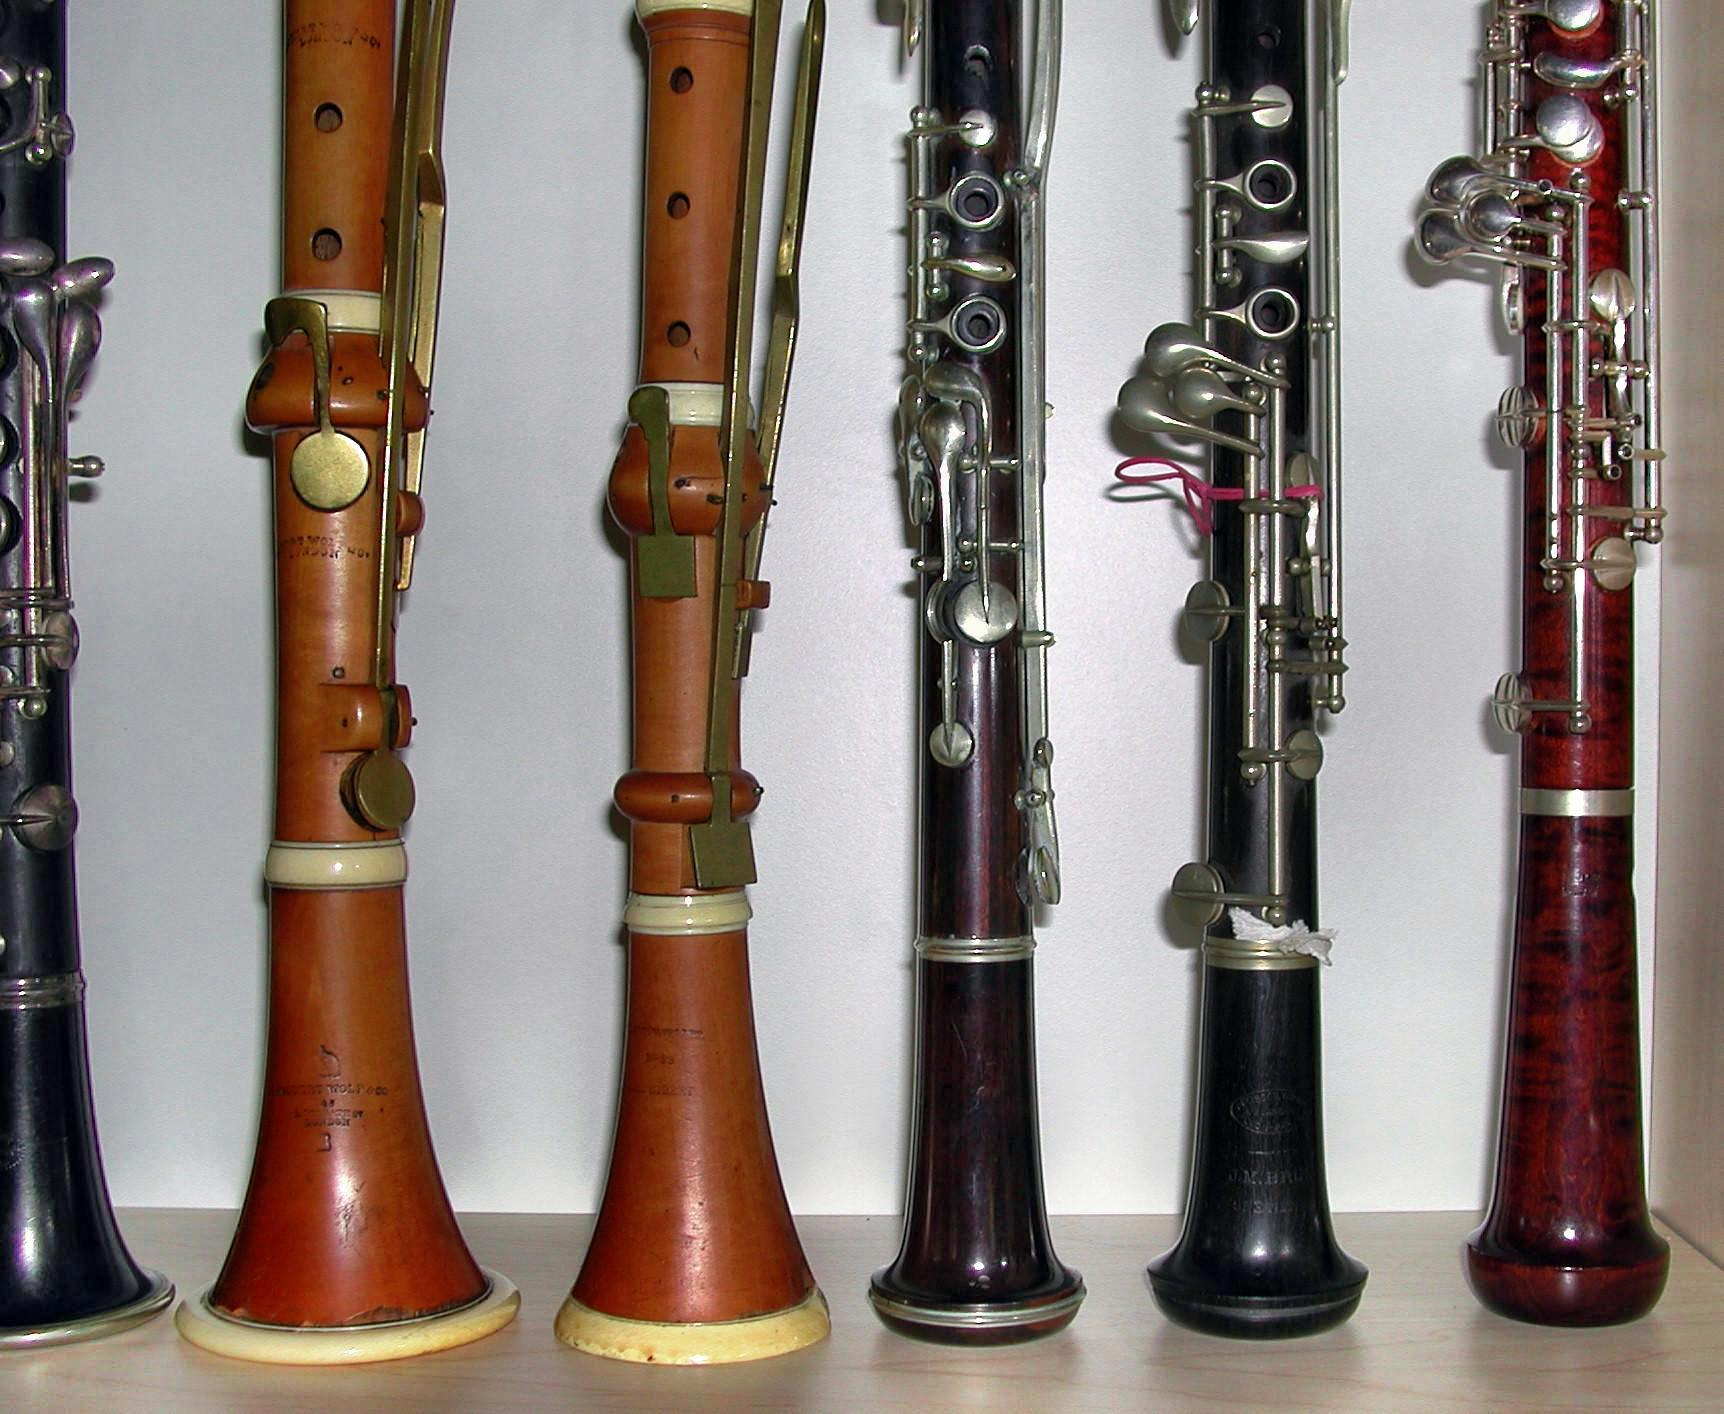 This should be Clarinets-oboes-1.jpeg.  Is it missing?